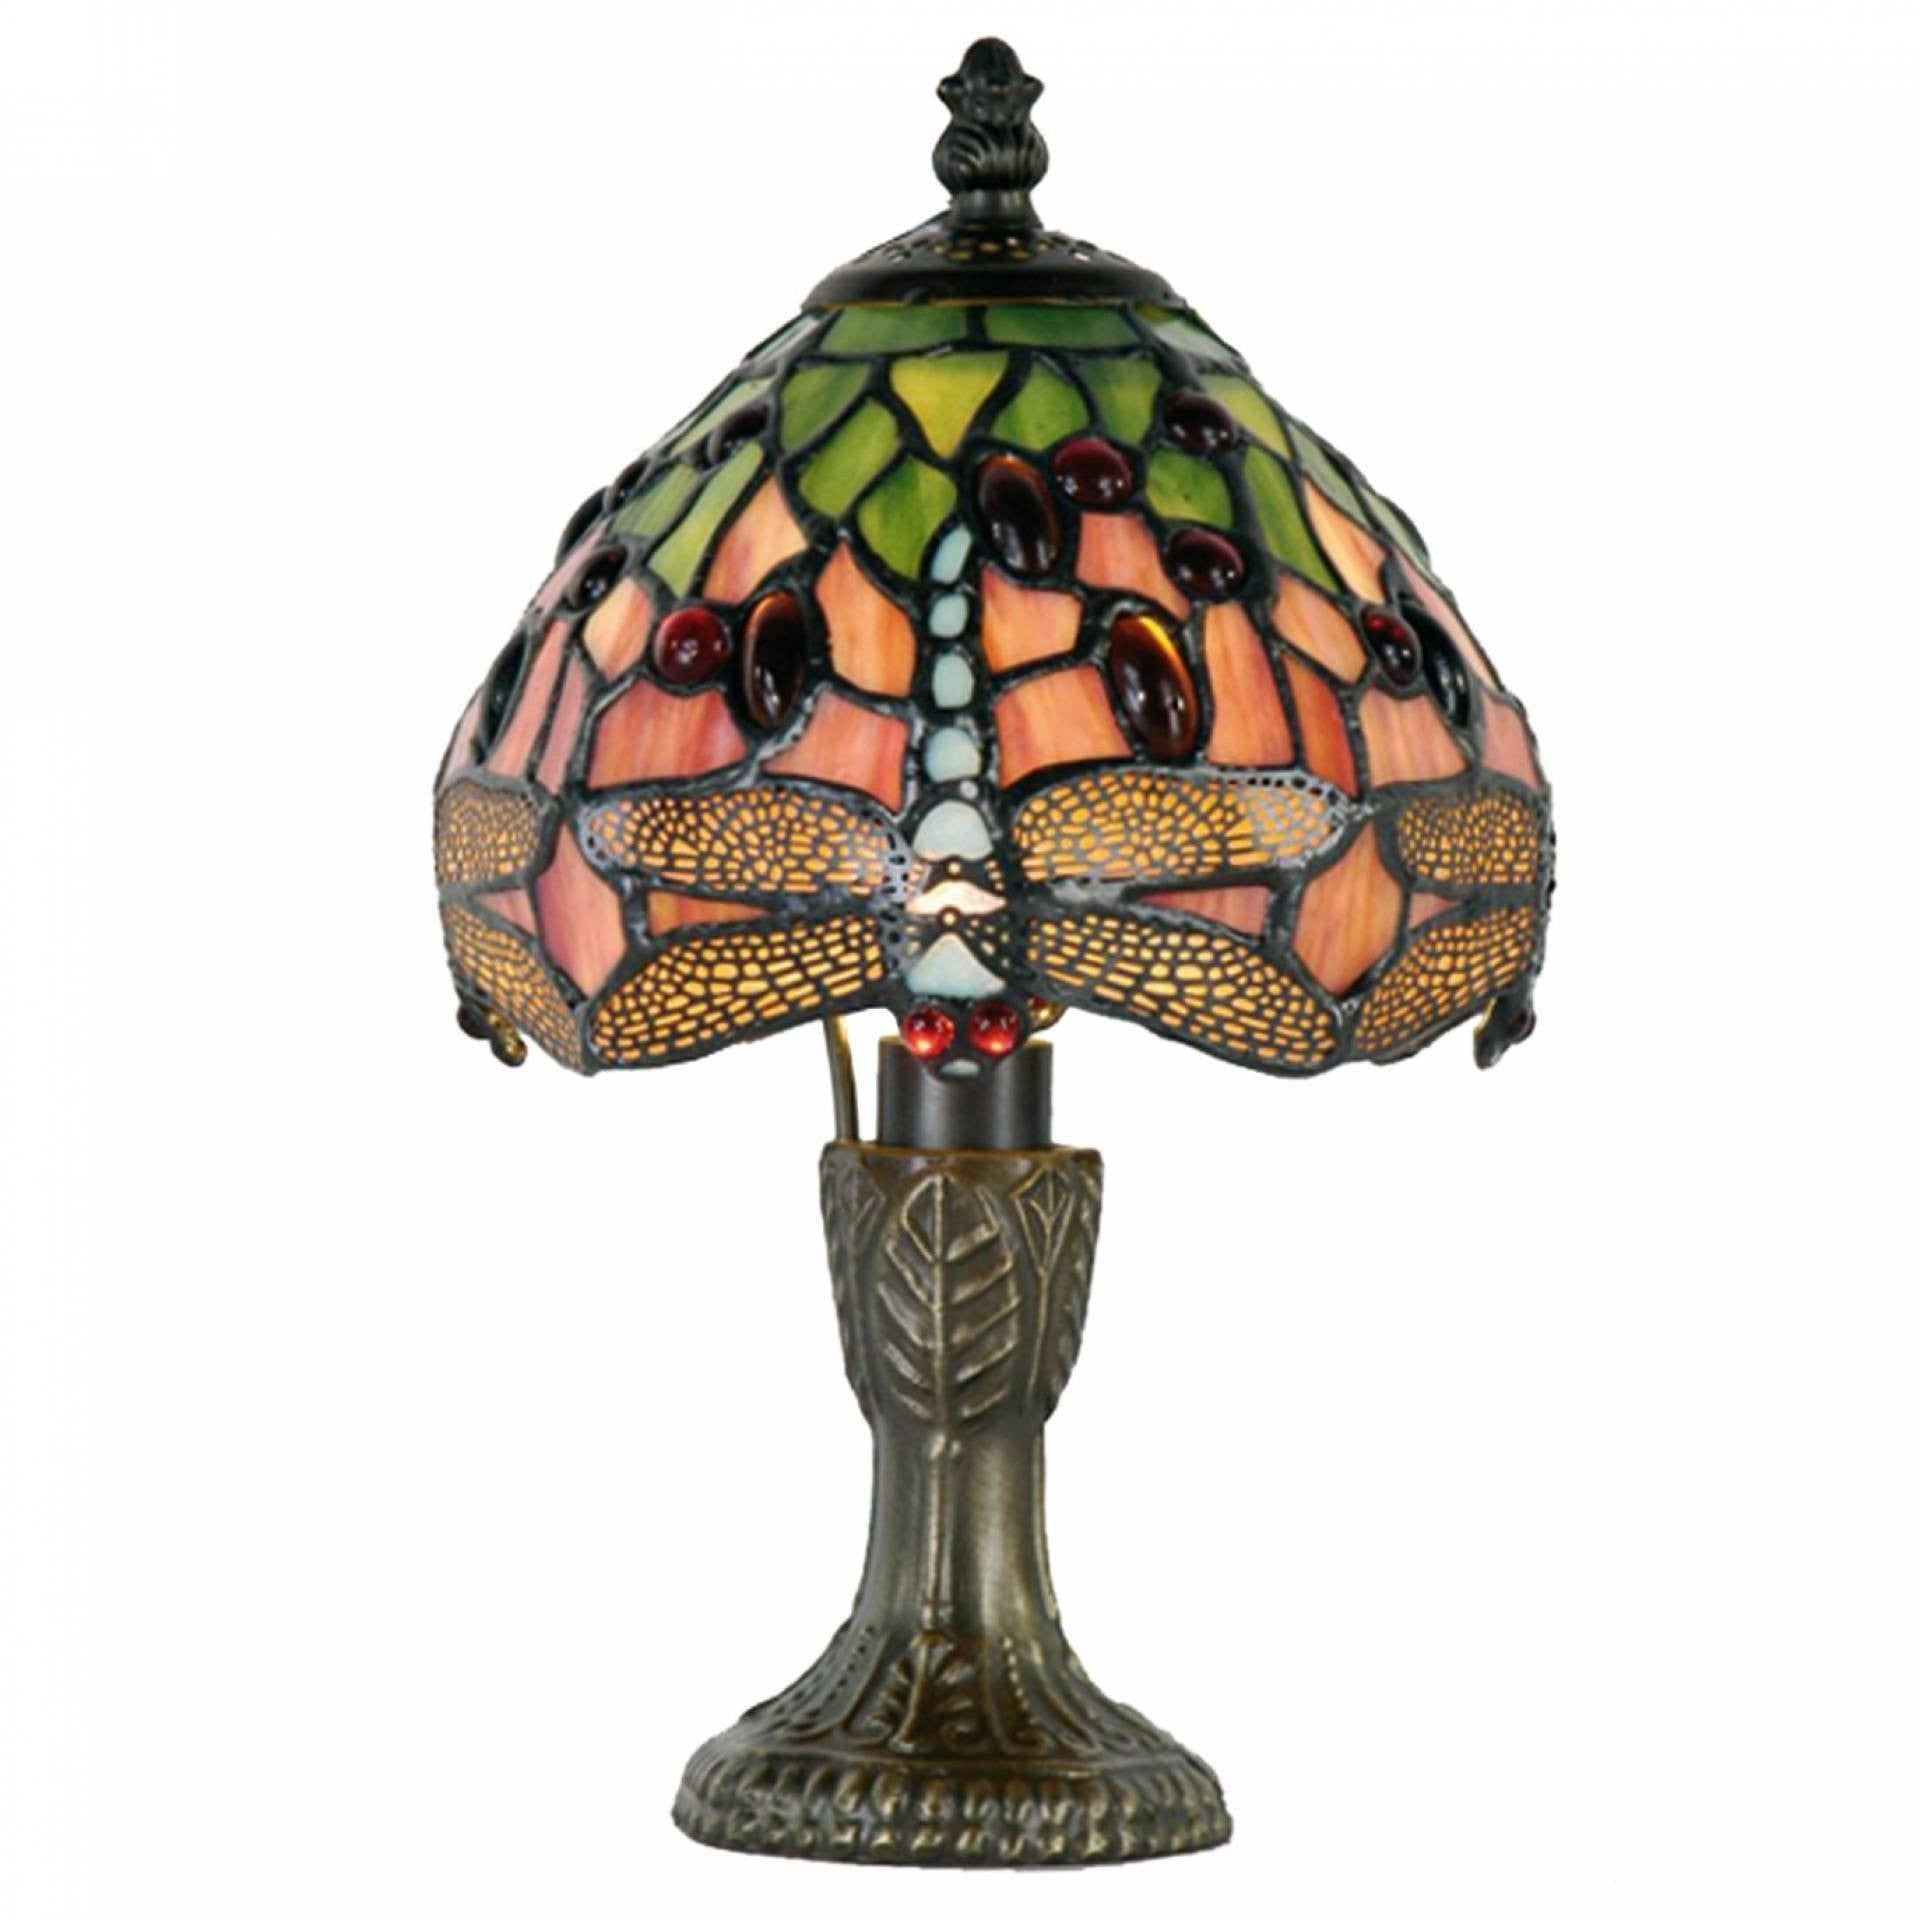 Tiffany Bedside Lamps - Flame Dragonfly Tiffany Bedside Lamp 1188